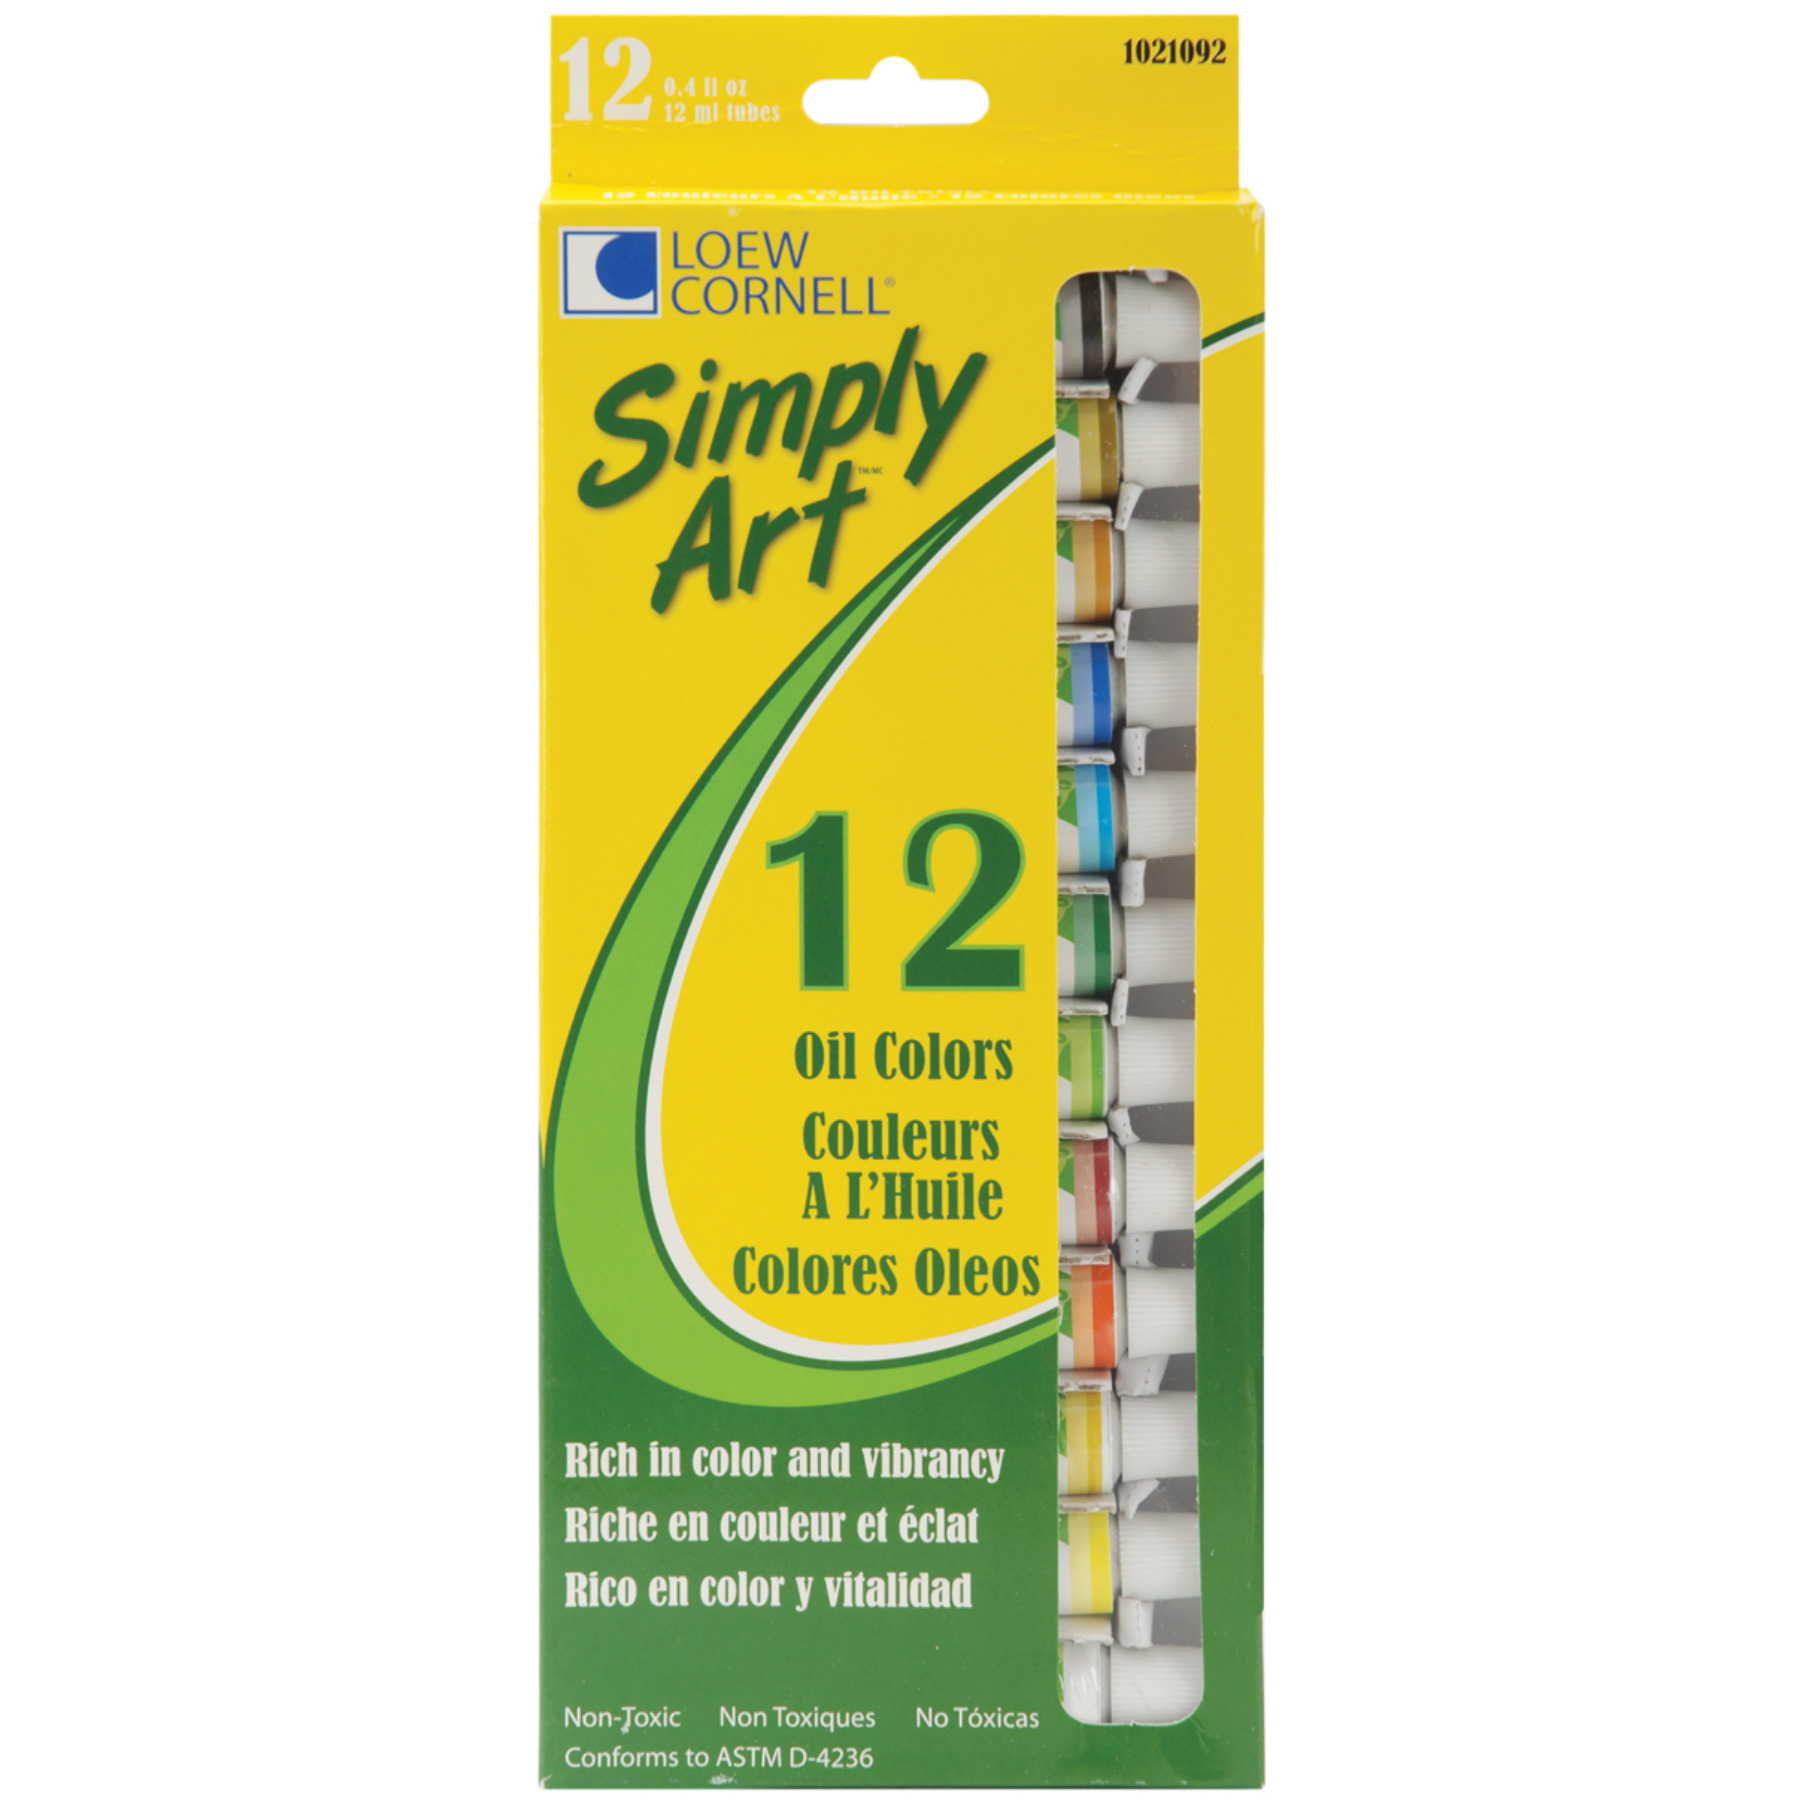 Simply Art Oil Paints 12ml 12 Per Package-Assorted Colors 1021092 1021092